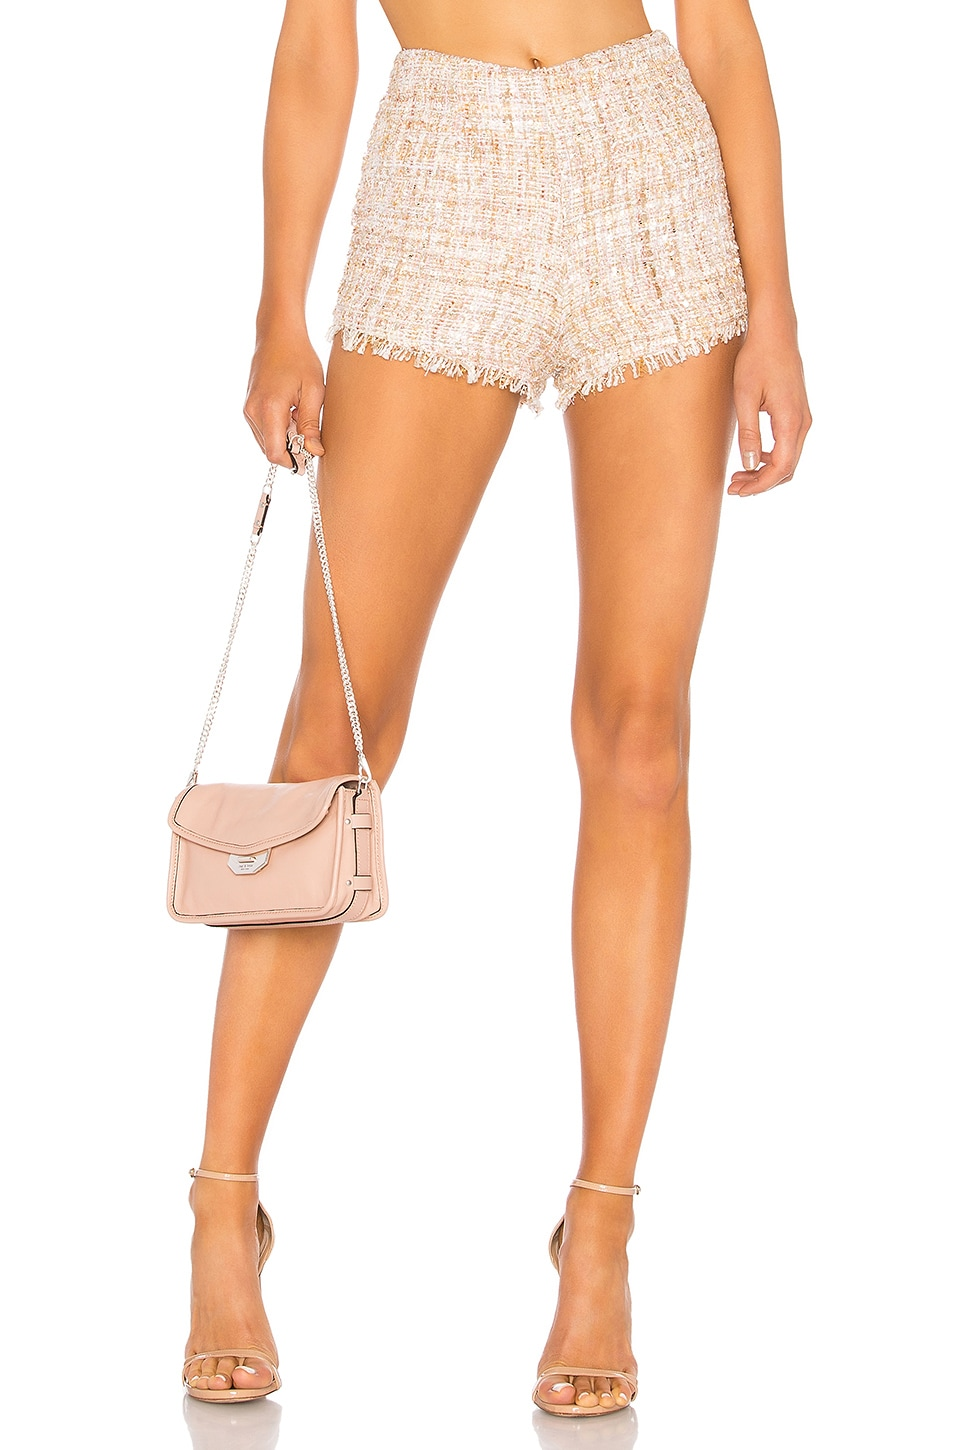 LPA Short 689 in Cream Multi